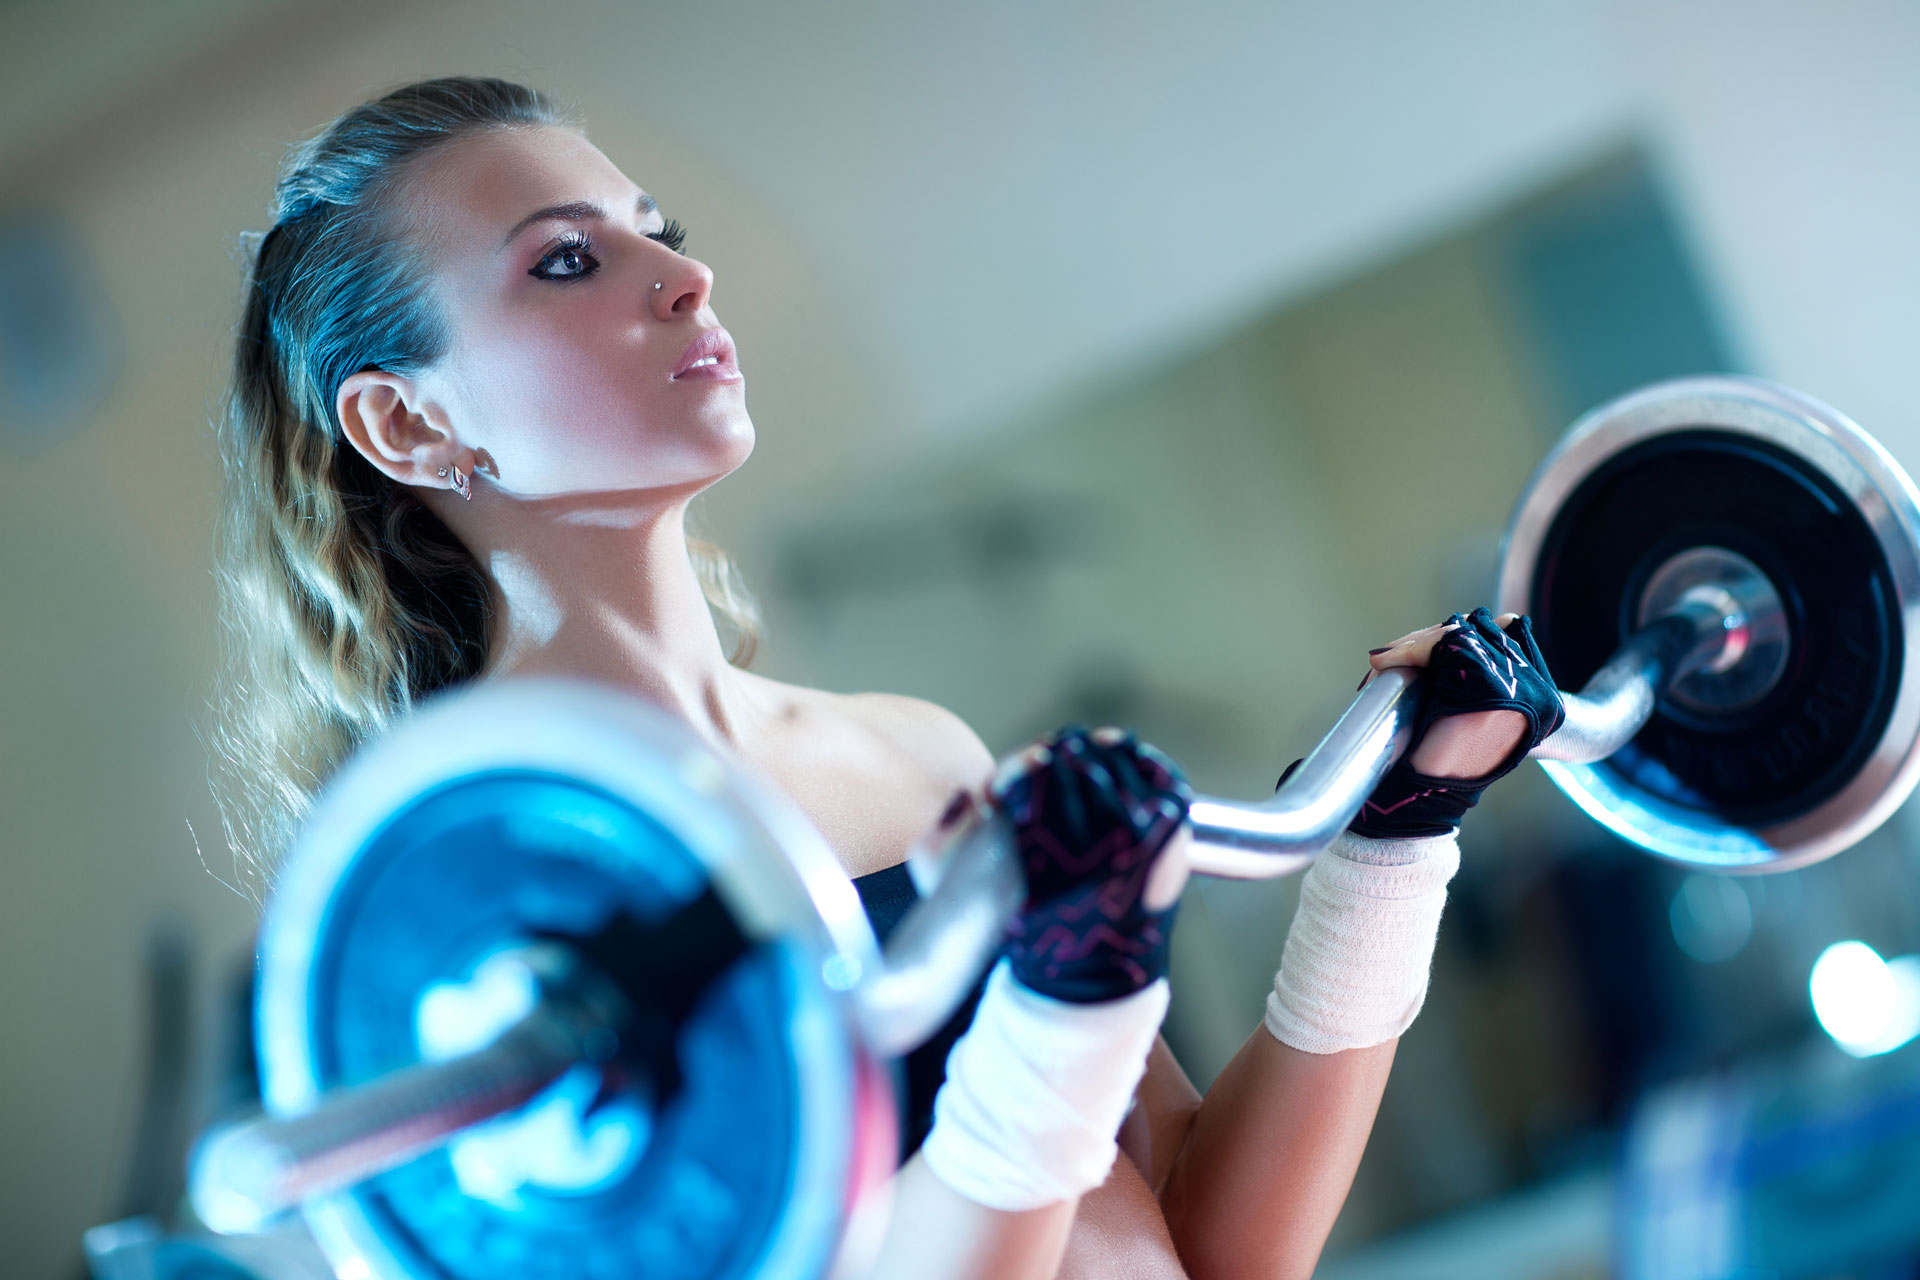 young-woman-weightlifting